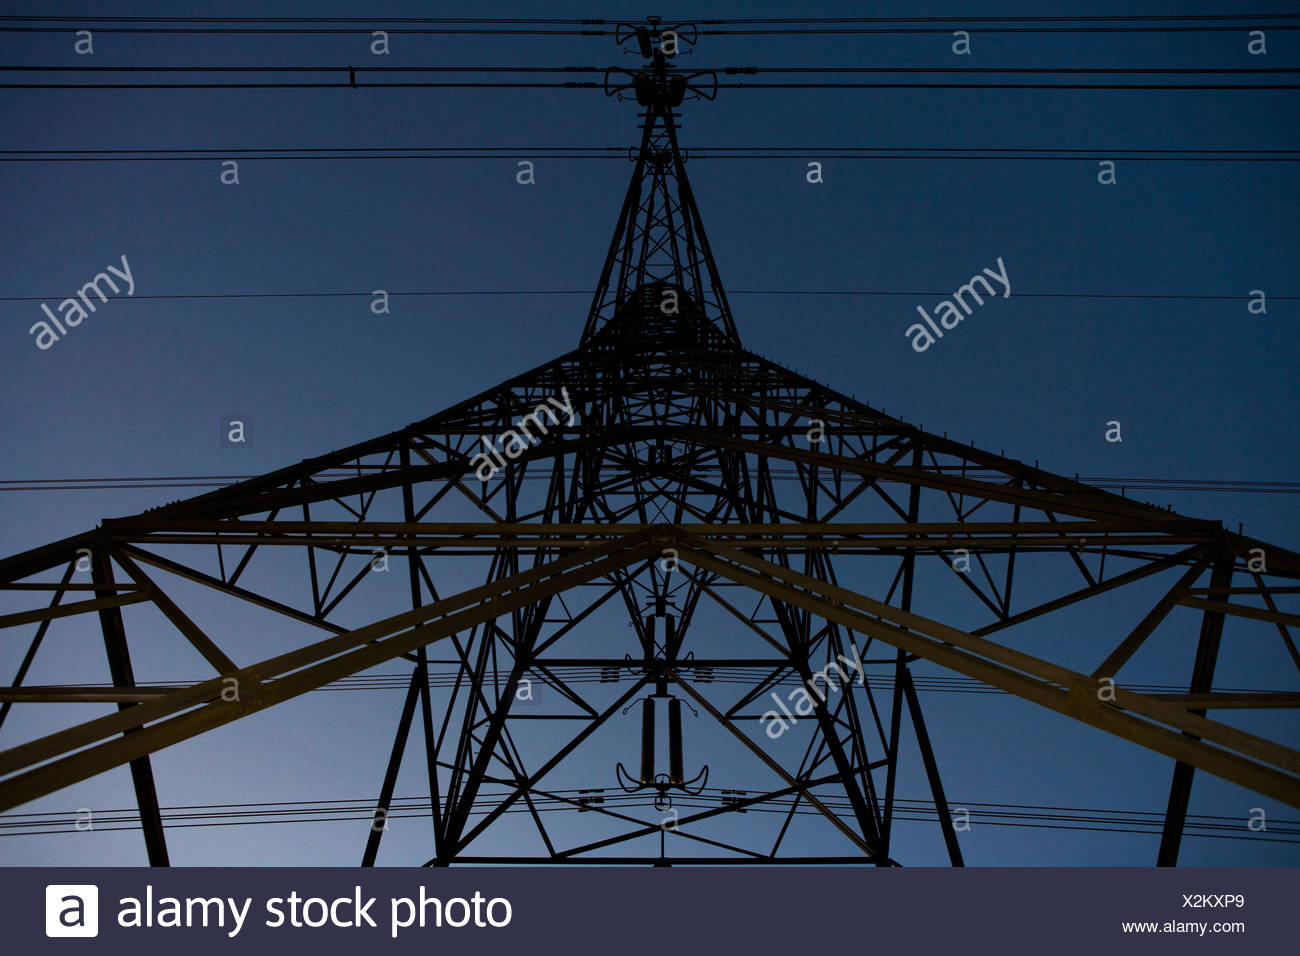 Pylons and power cables 3 - Stock Image